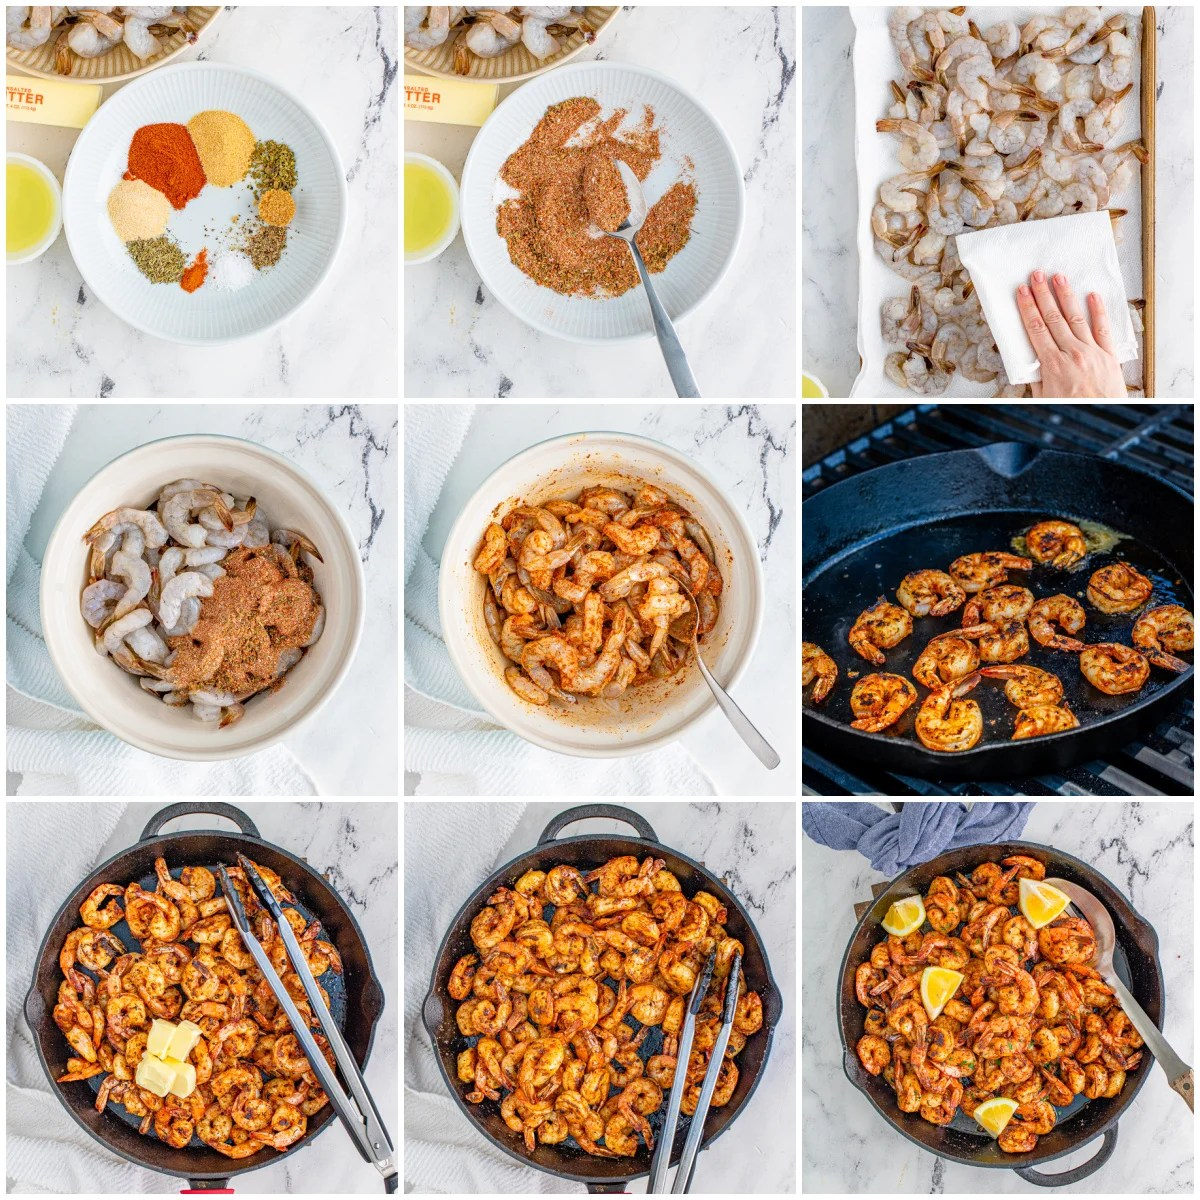 Step by step photos on how to make Blackened Shrimp